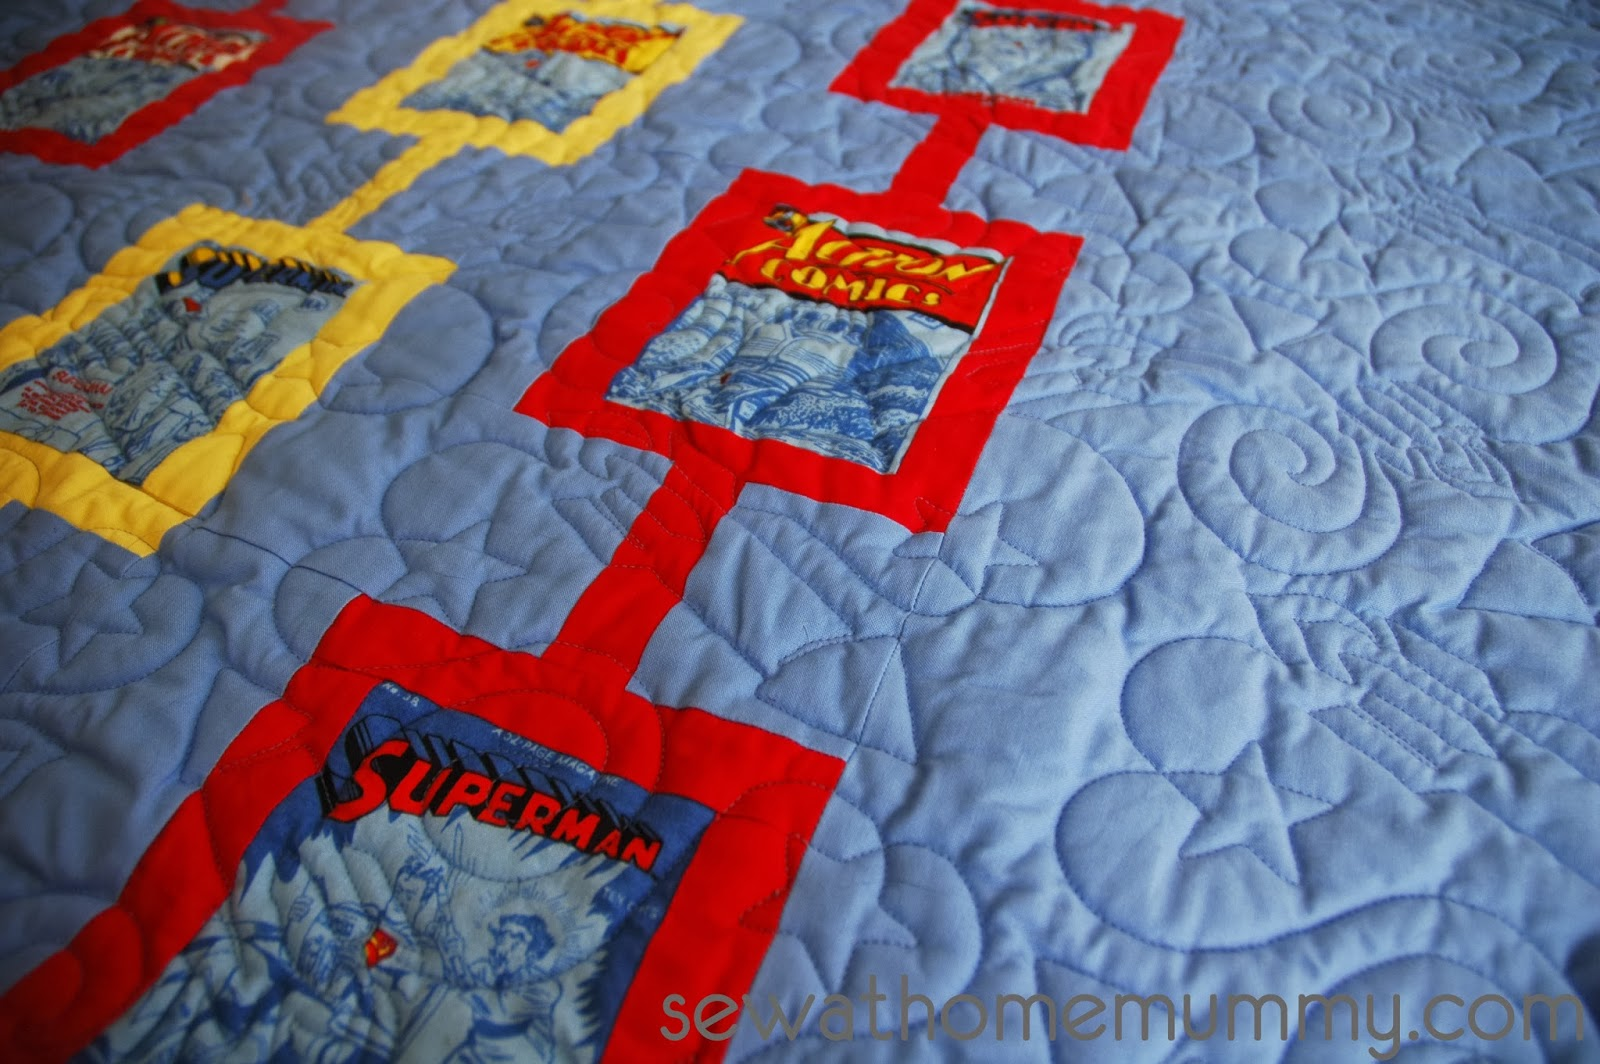 Superhero quilt ideas for boys, superman quilt